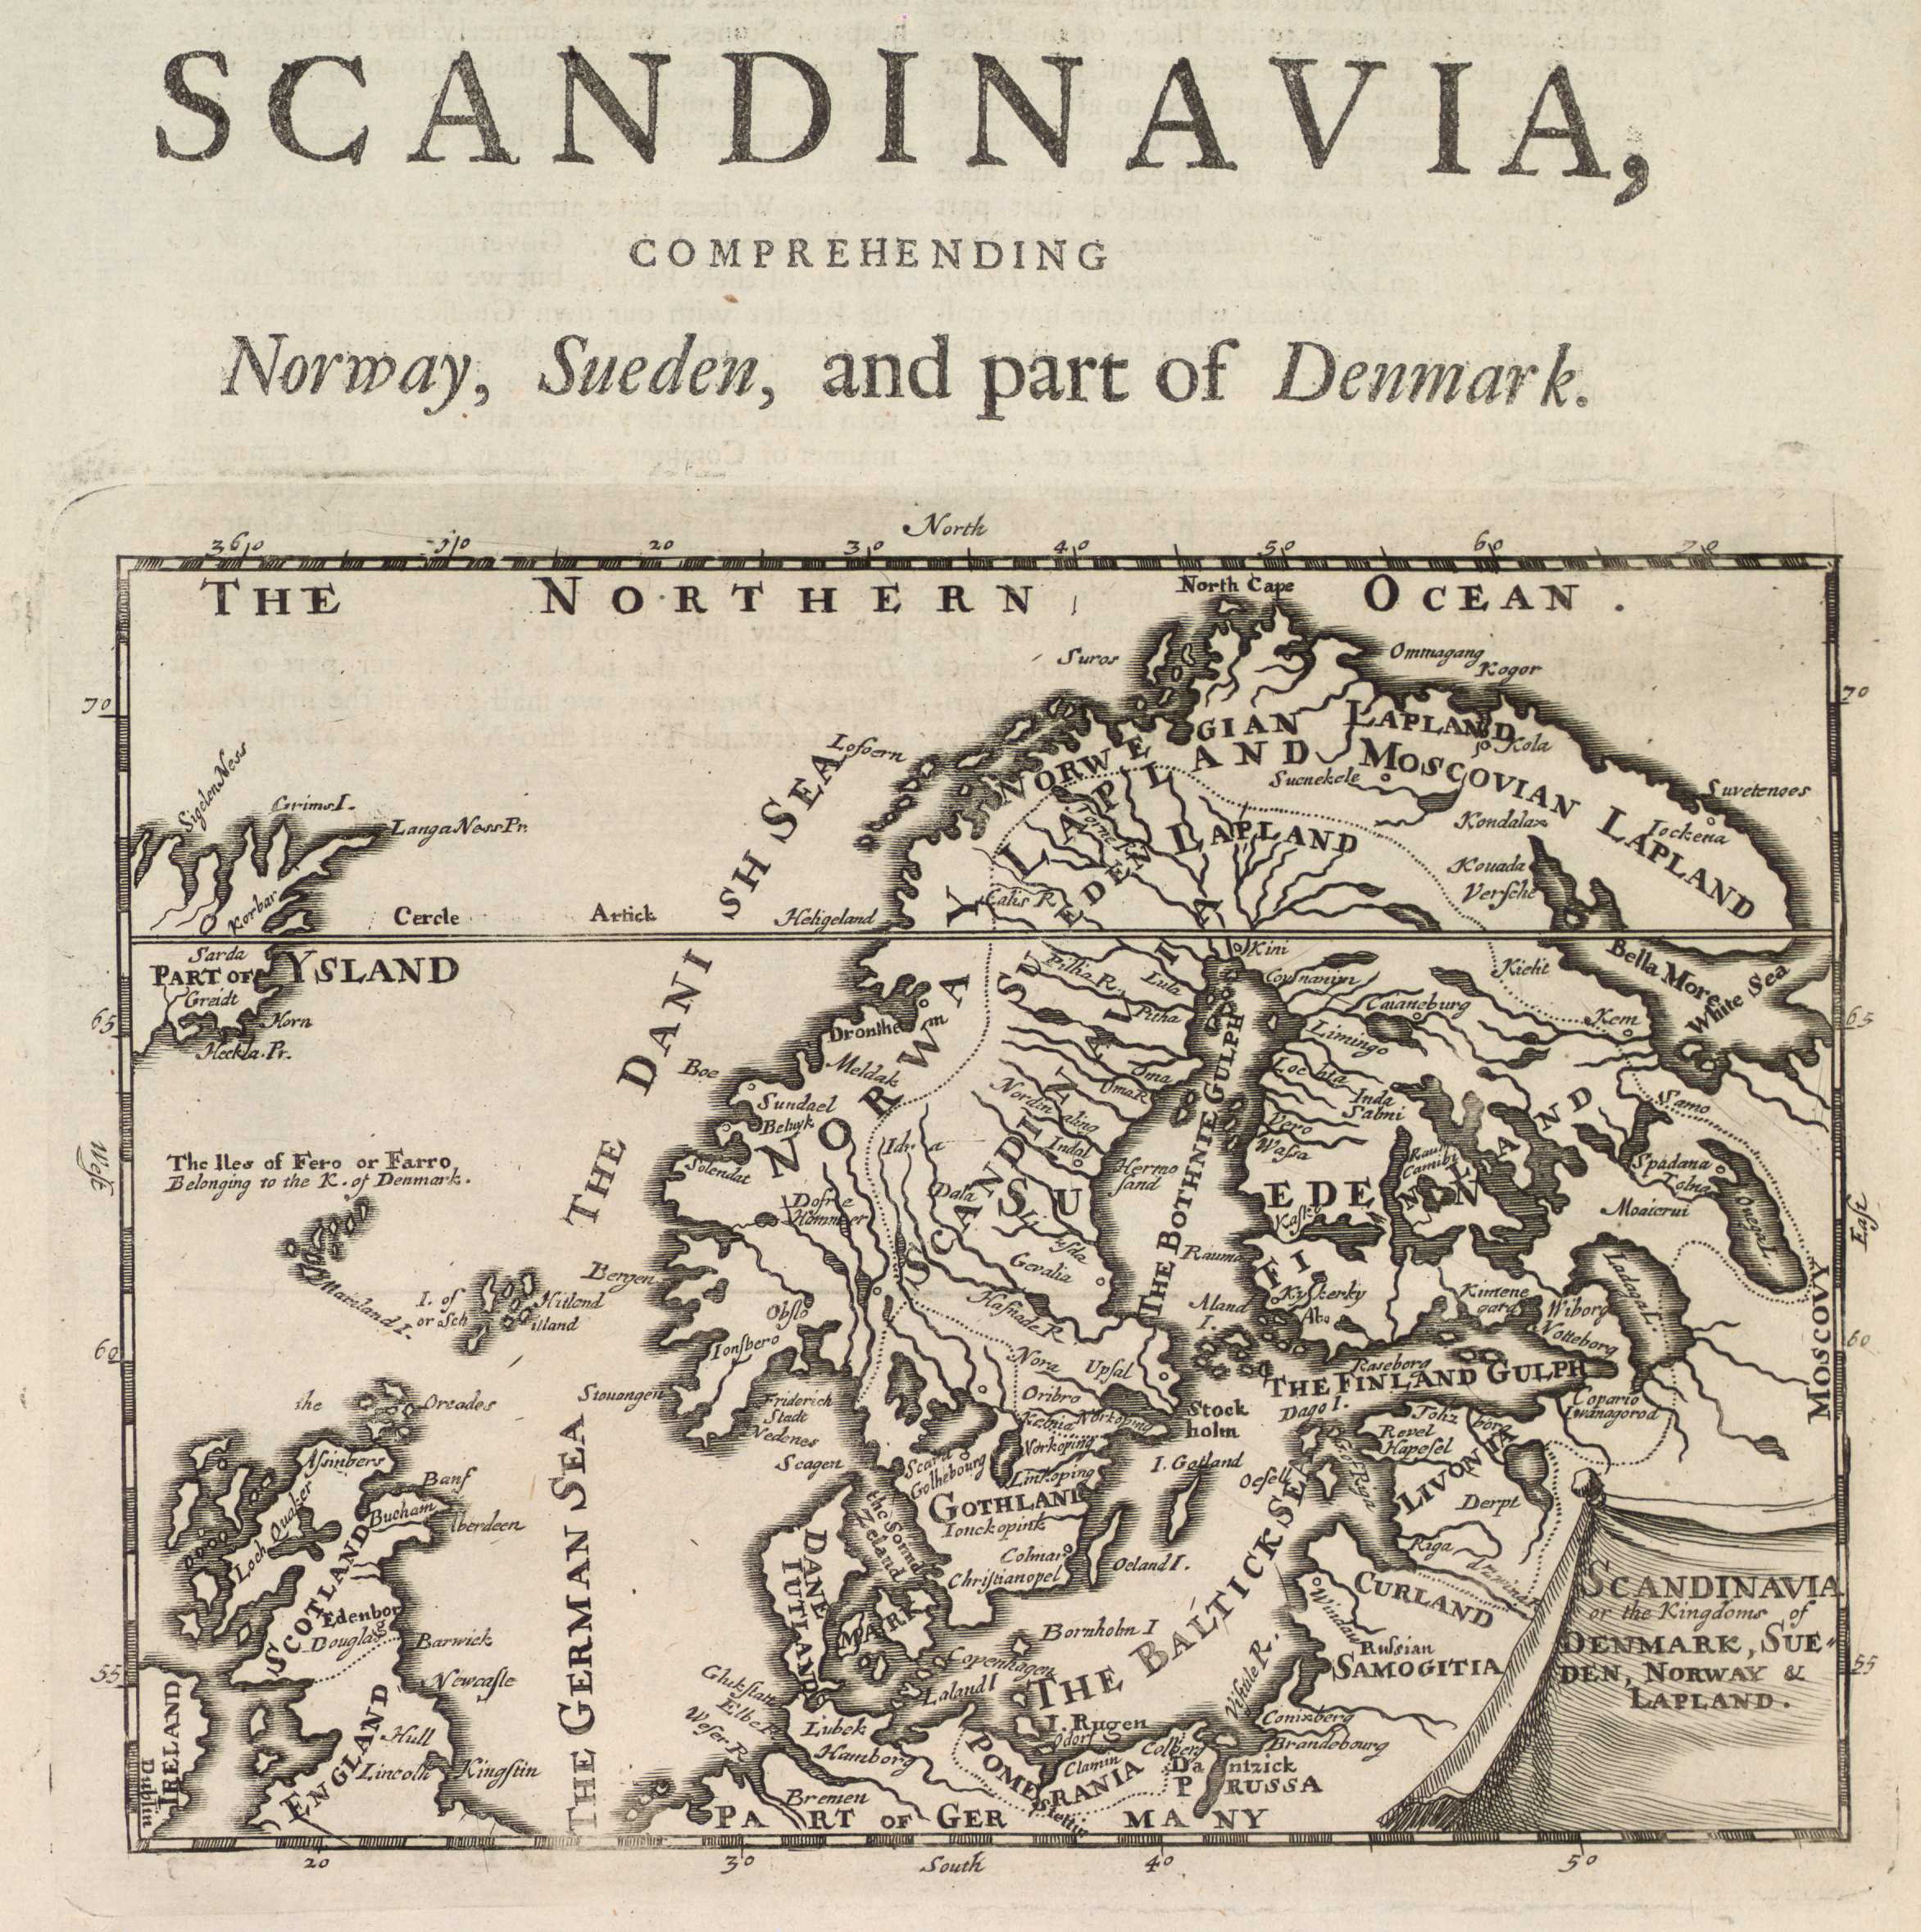 Scandinavia, or the Kingdoms of Denmark, Sueden, Norway & Lapland